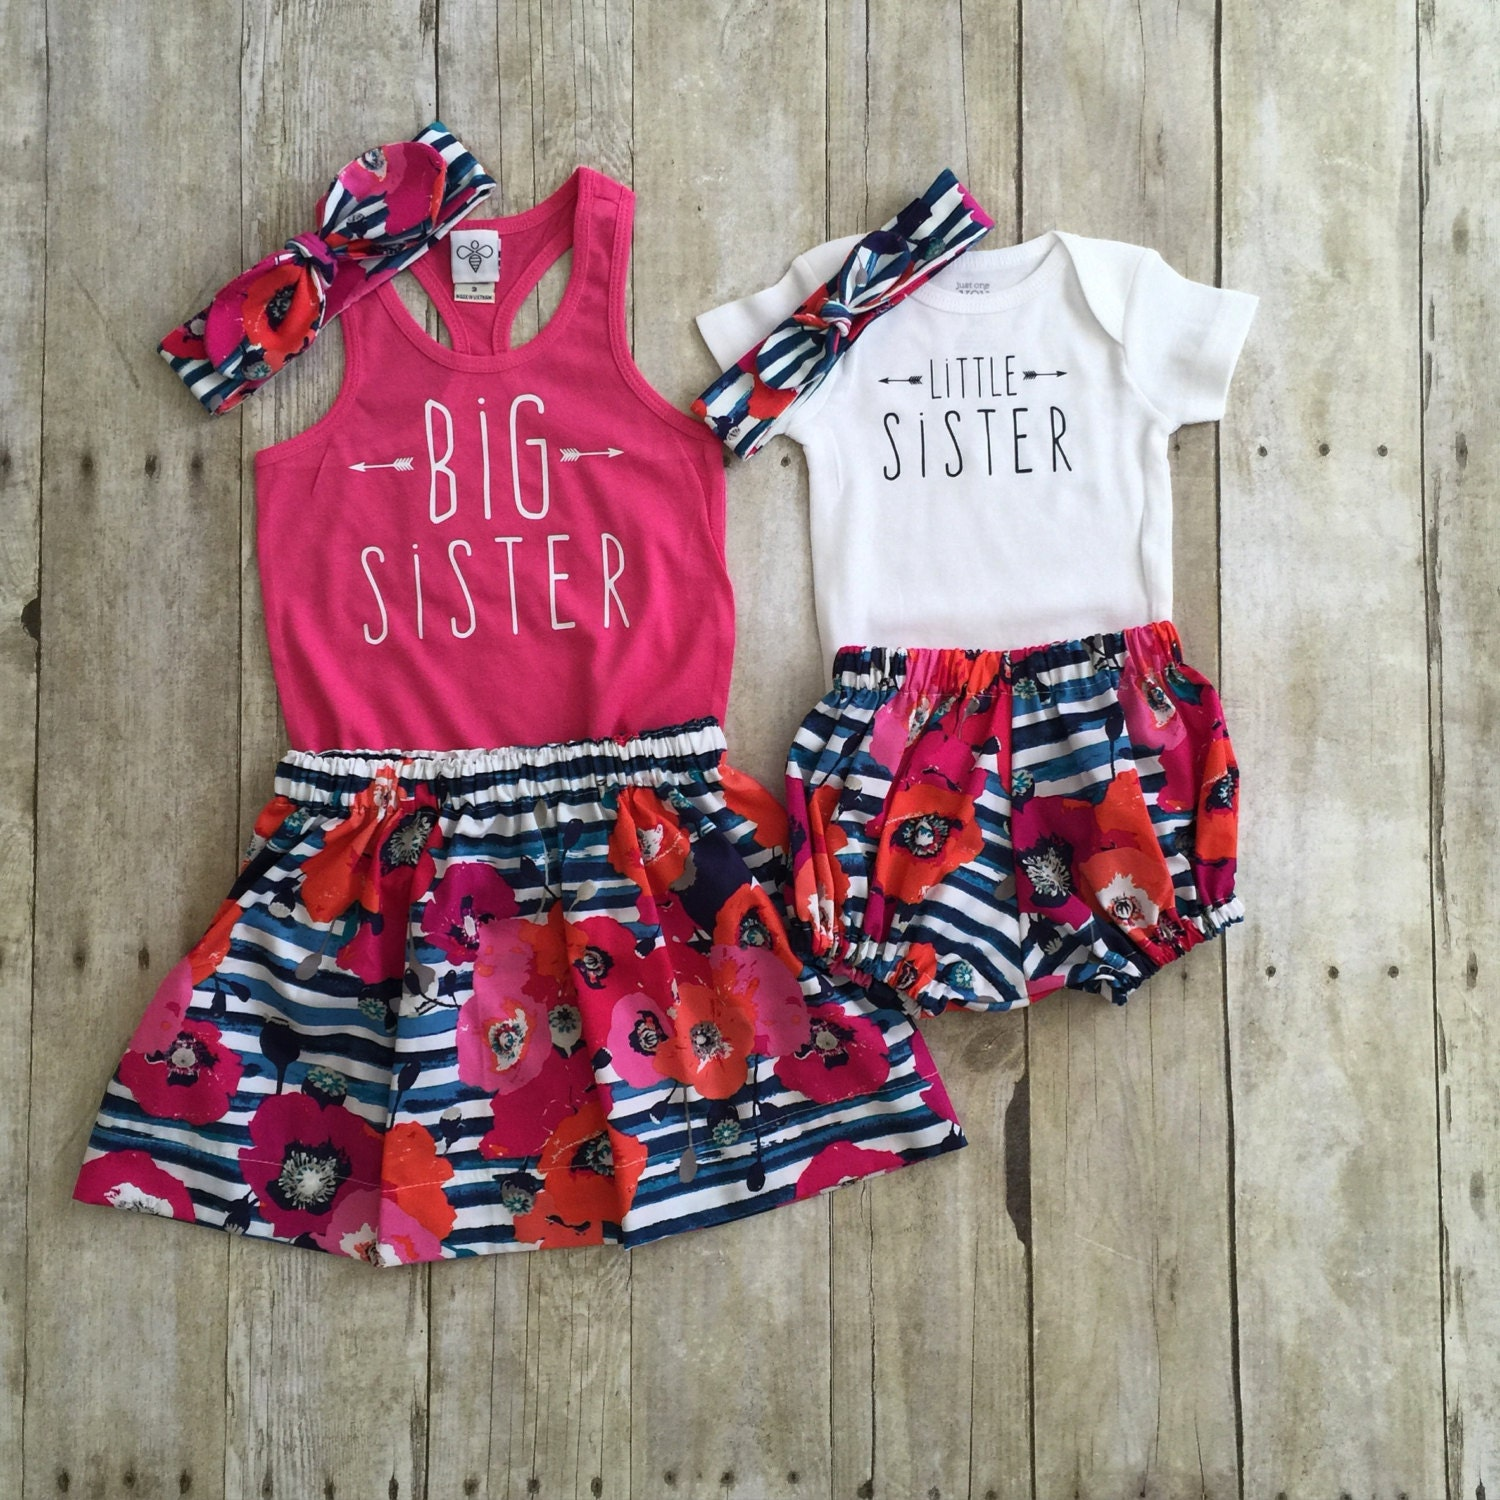 Shop for customizable Big Sister Little Brother clothing on Zazzle. Check out our t-shirts, polo shirts, hoodies, & more great items. Start browsing today!